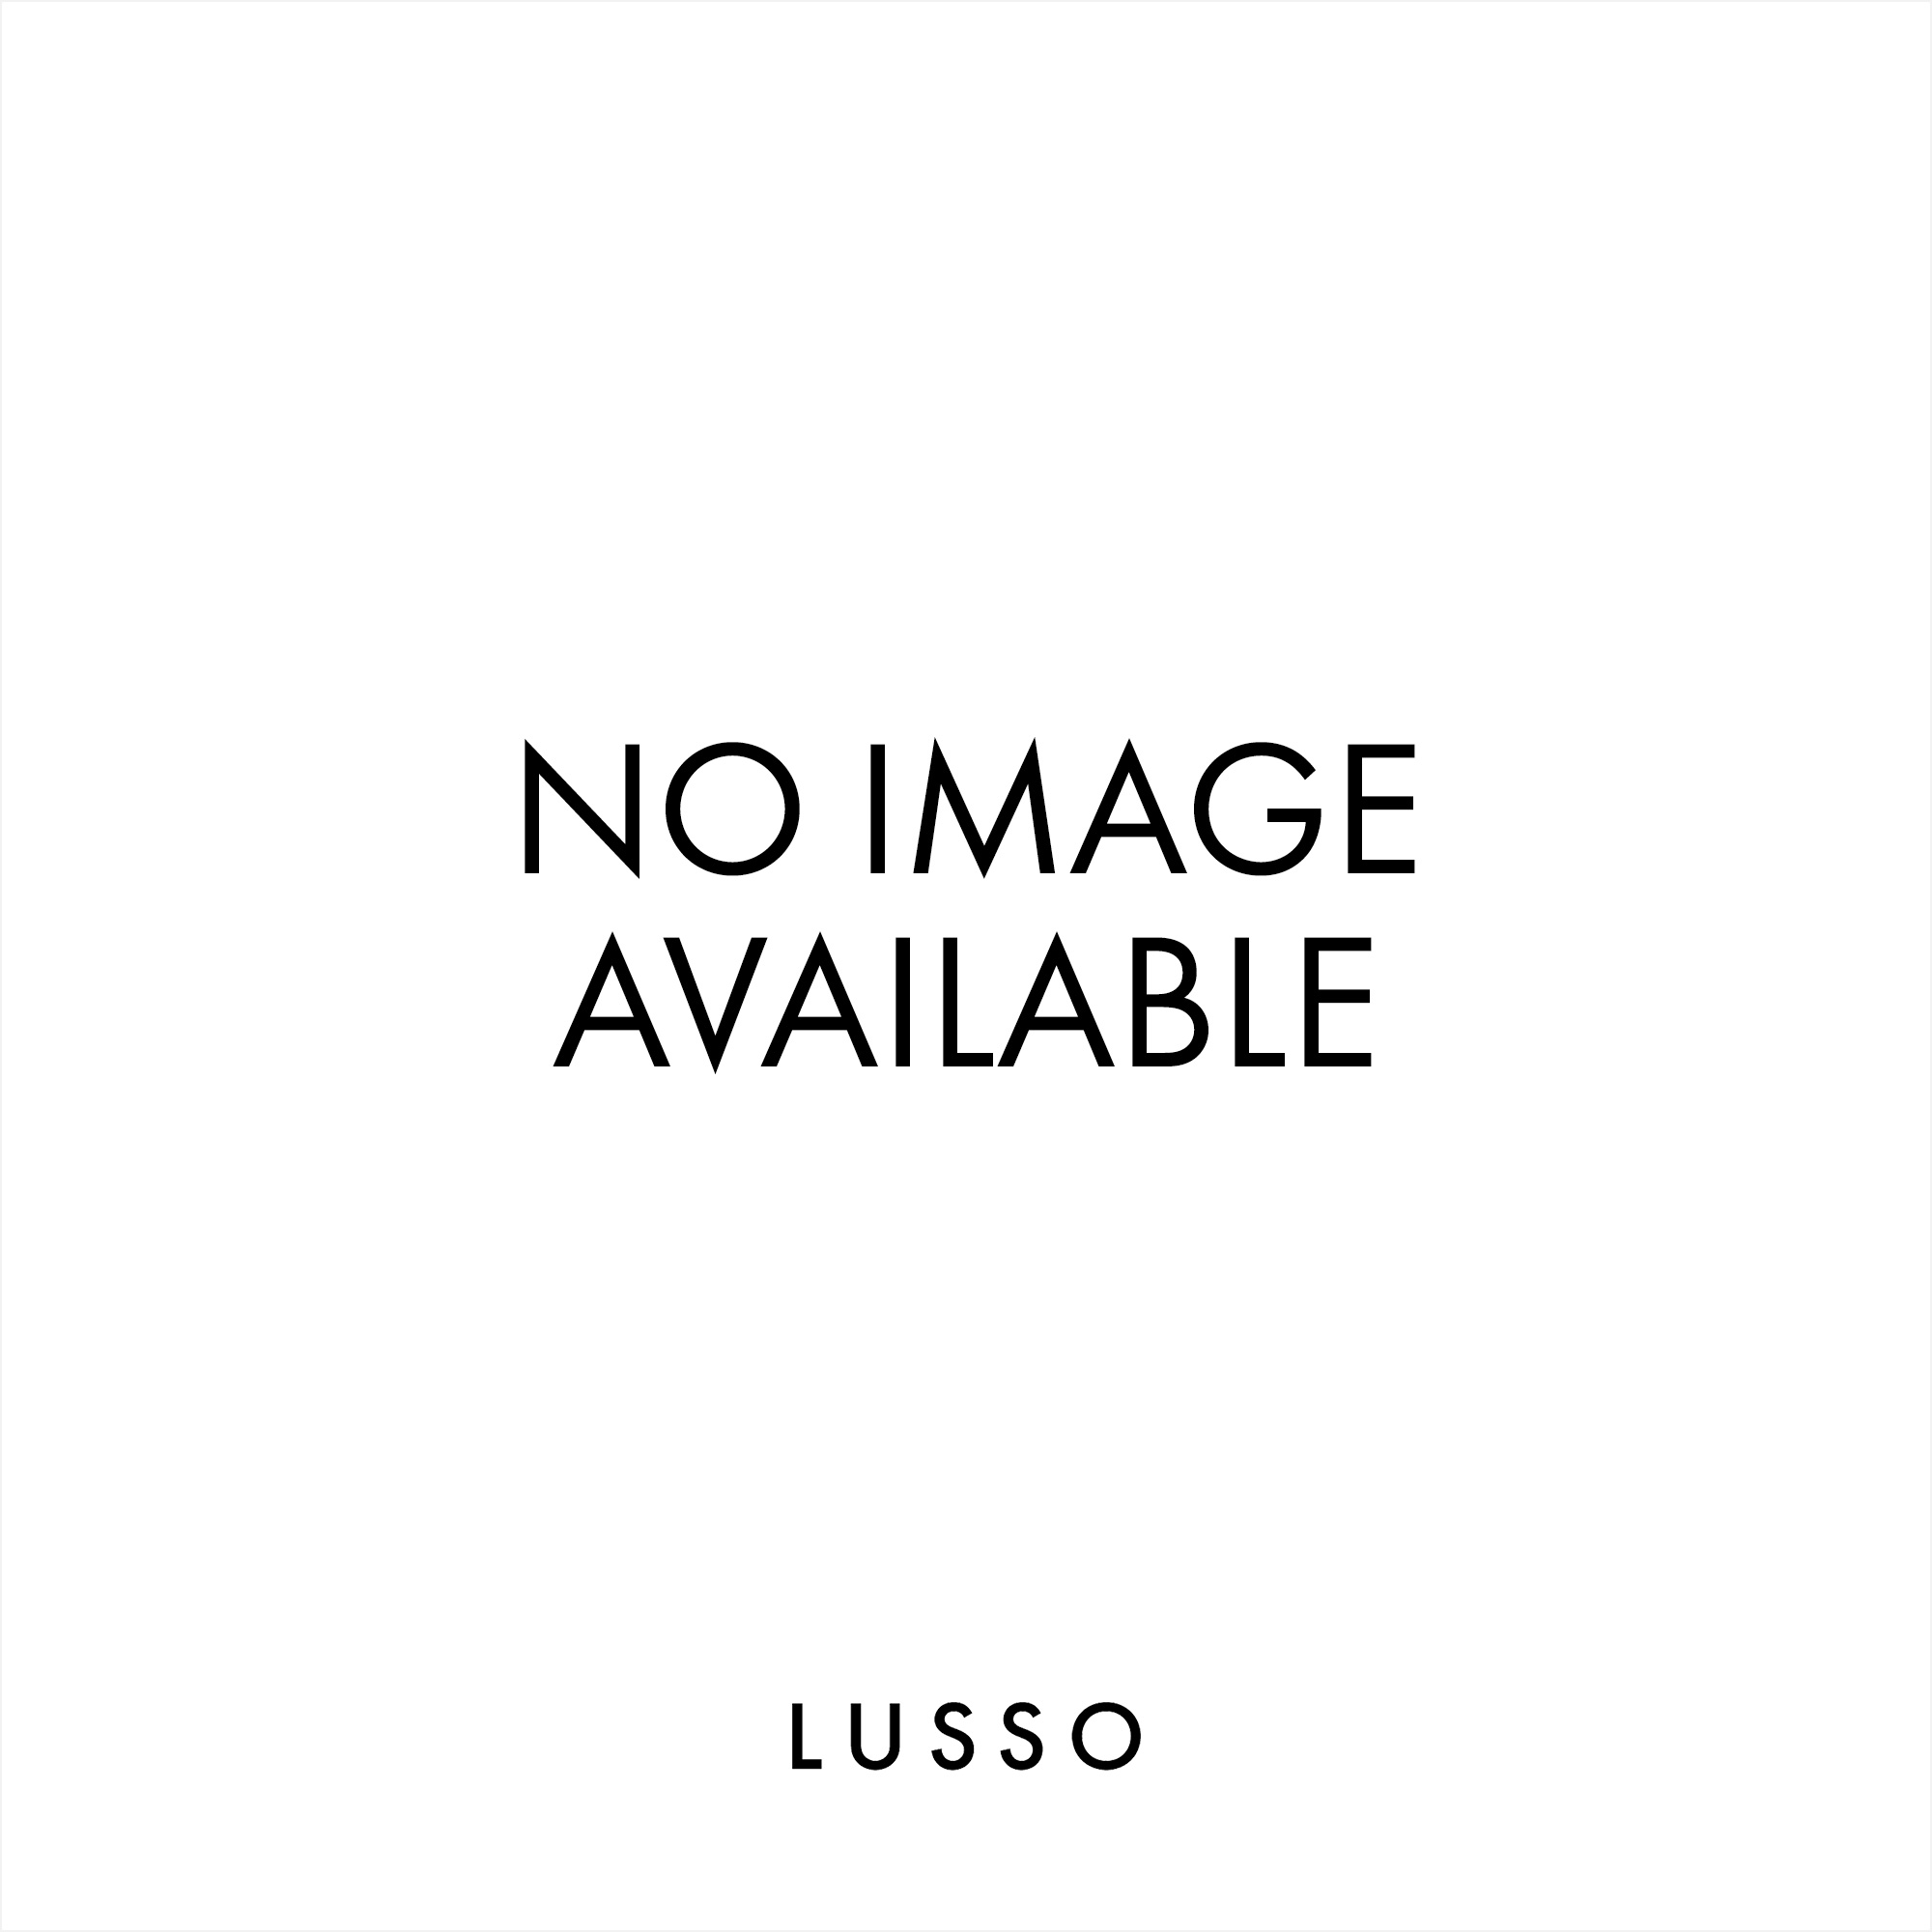 Luxury Bathroom Vanity Units Lusso Stone